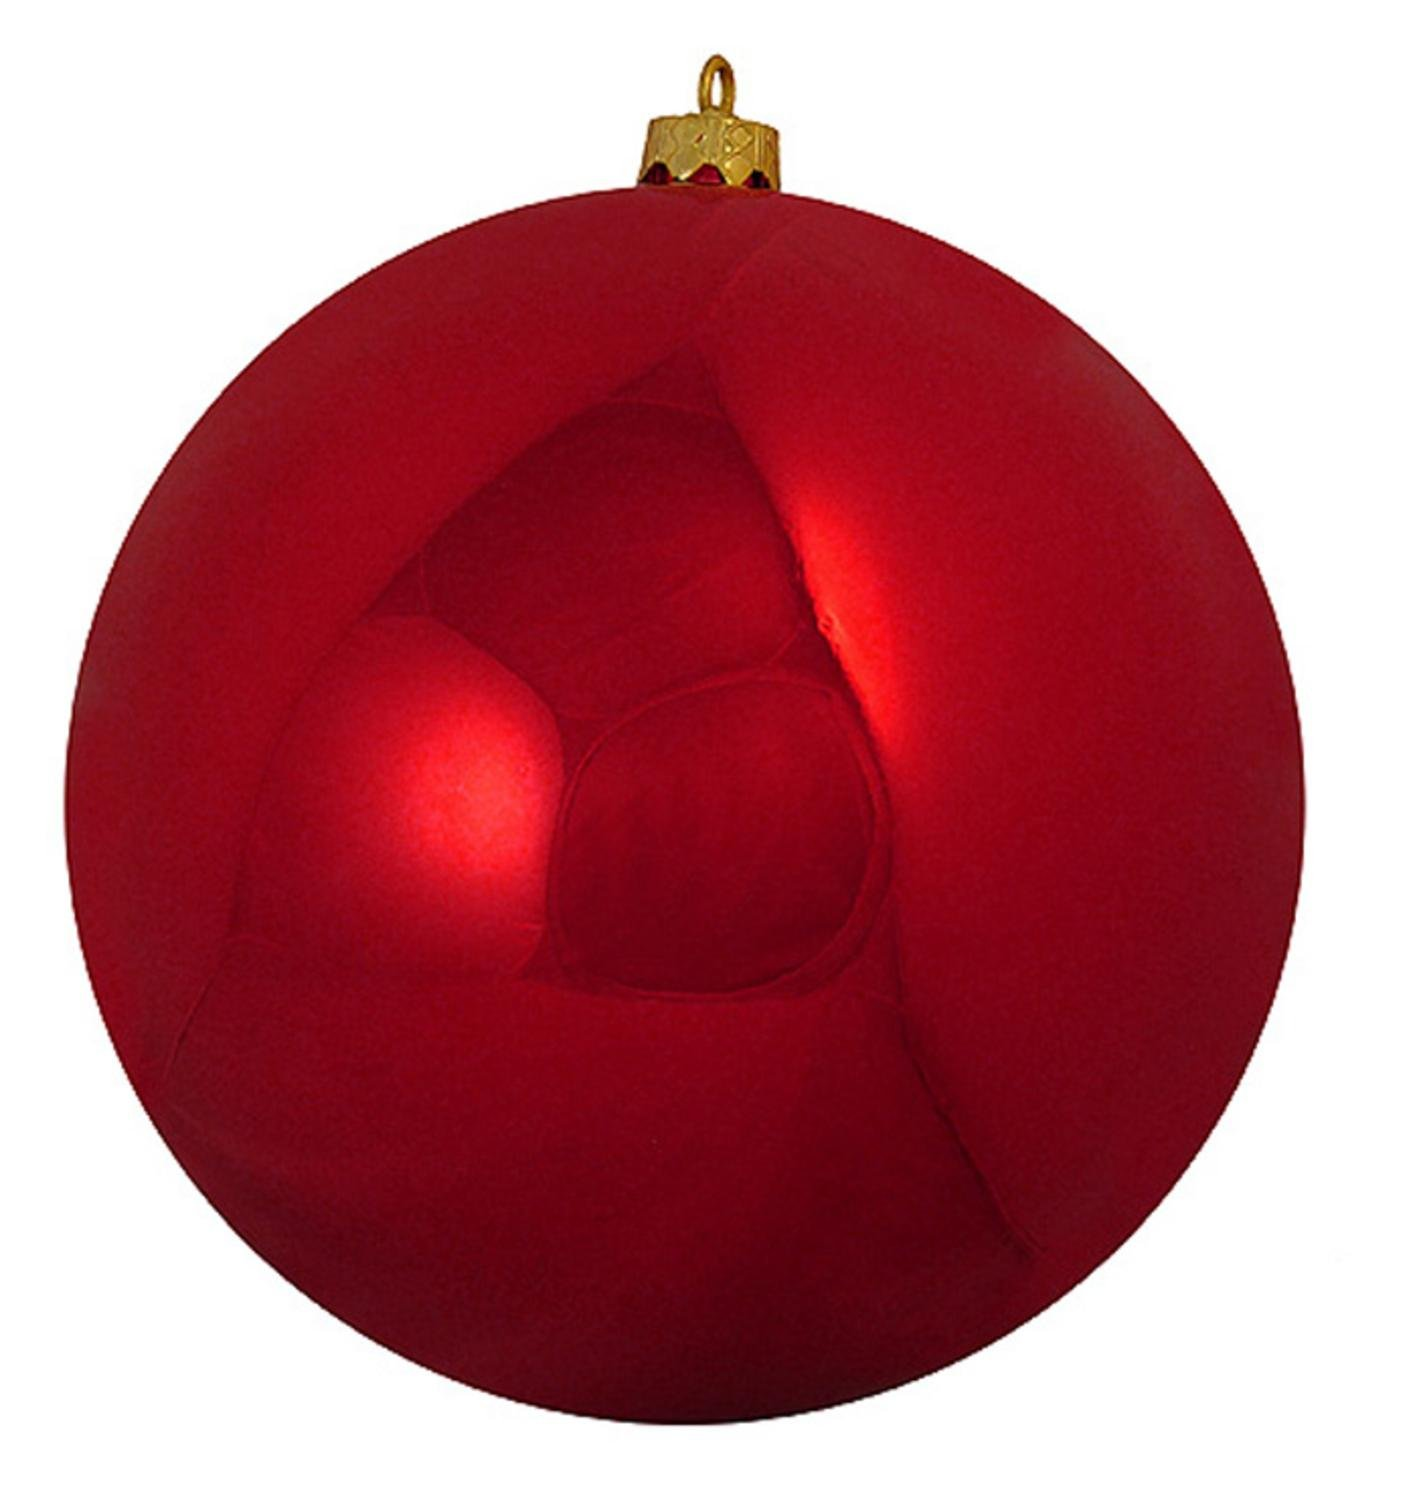 Amazoncom Shiny Red Hot Commercial Shatterproof Christmas Ball Ornament 6